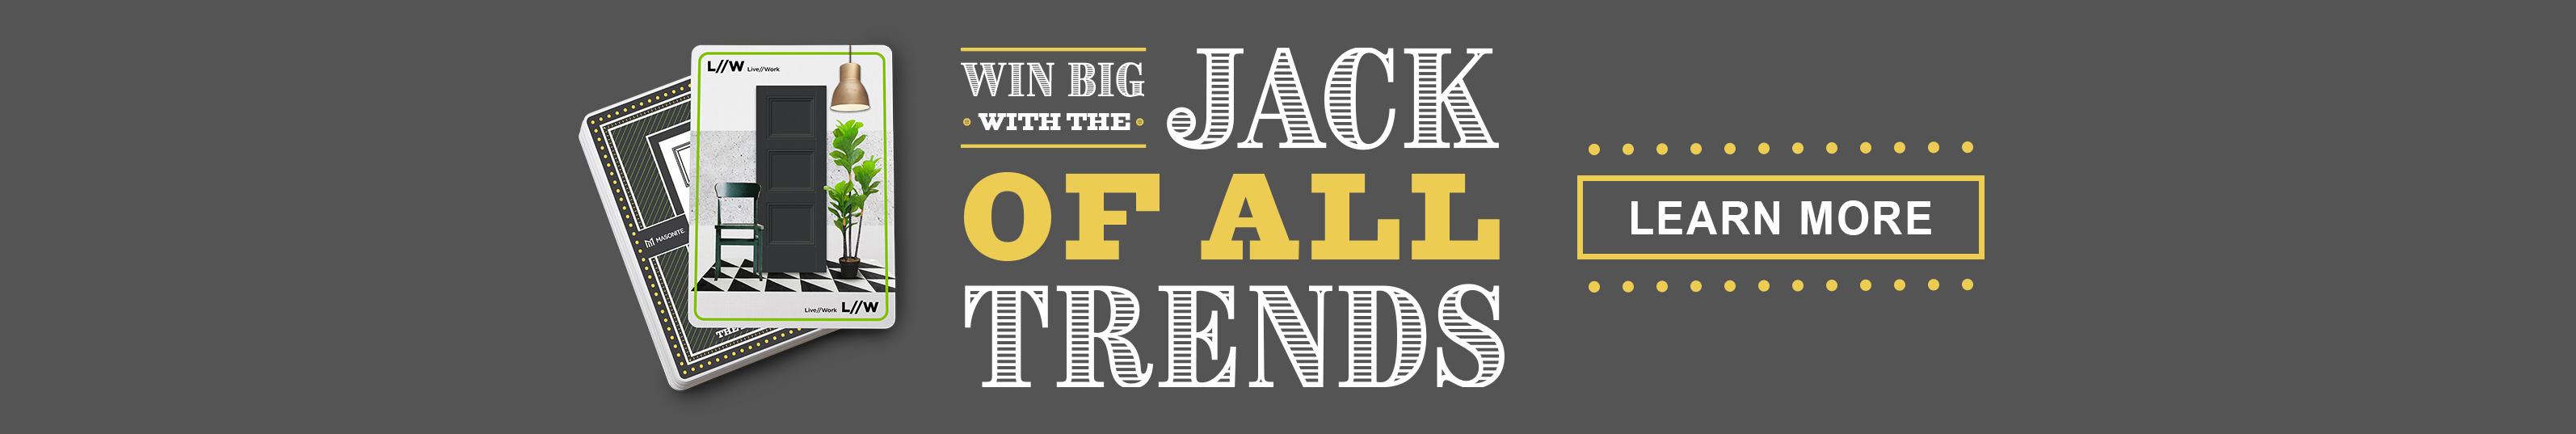 Jack of All Trends